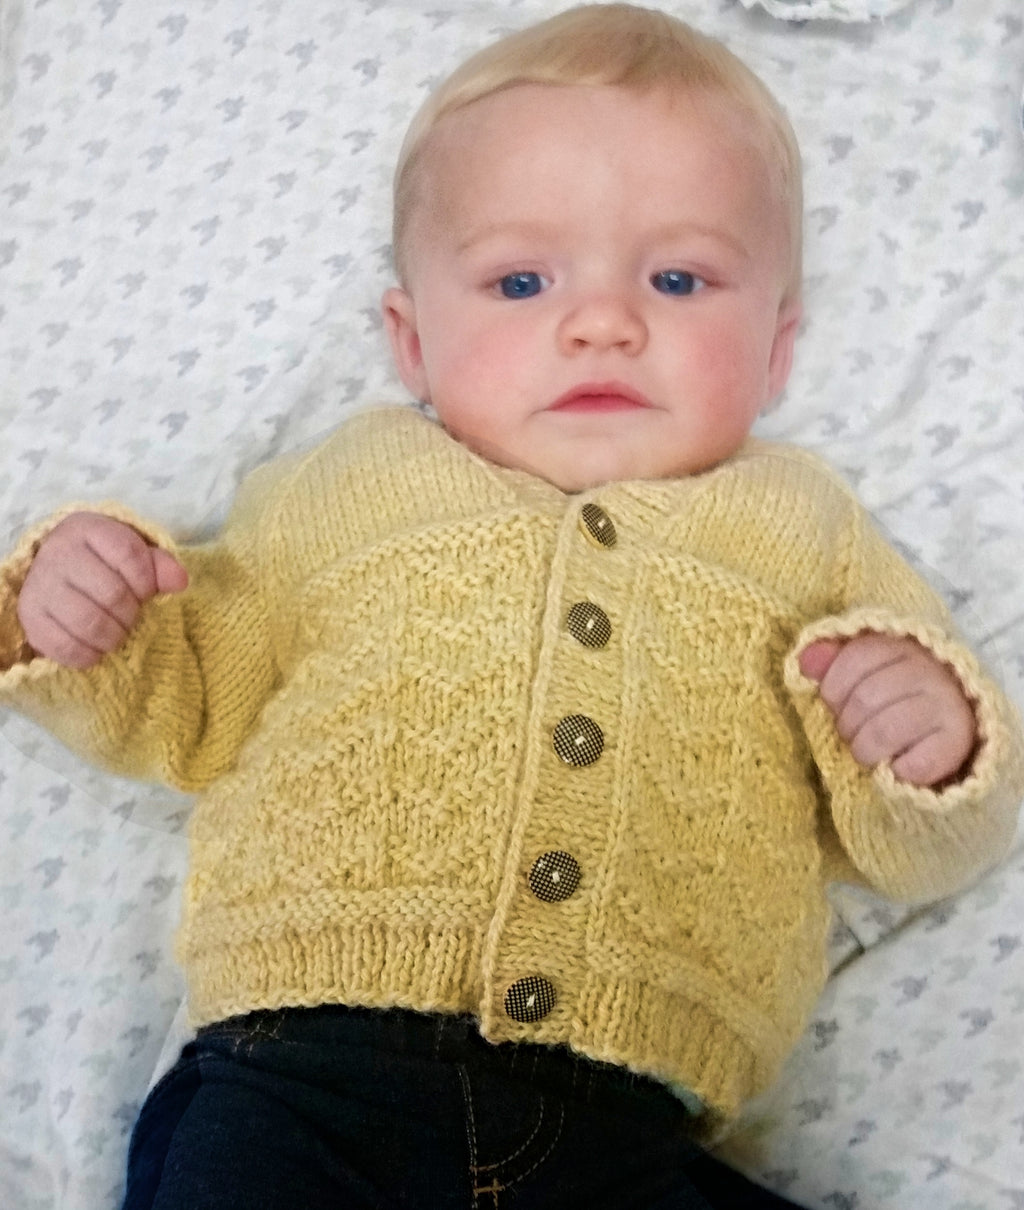 Wavy Baby Sweater - Designed by Carla A. Sturgis and Judy Head